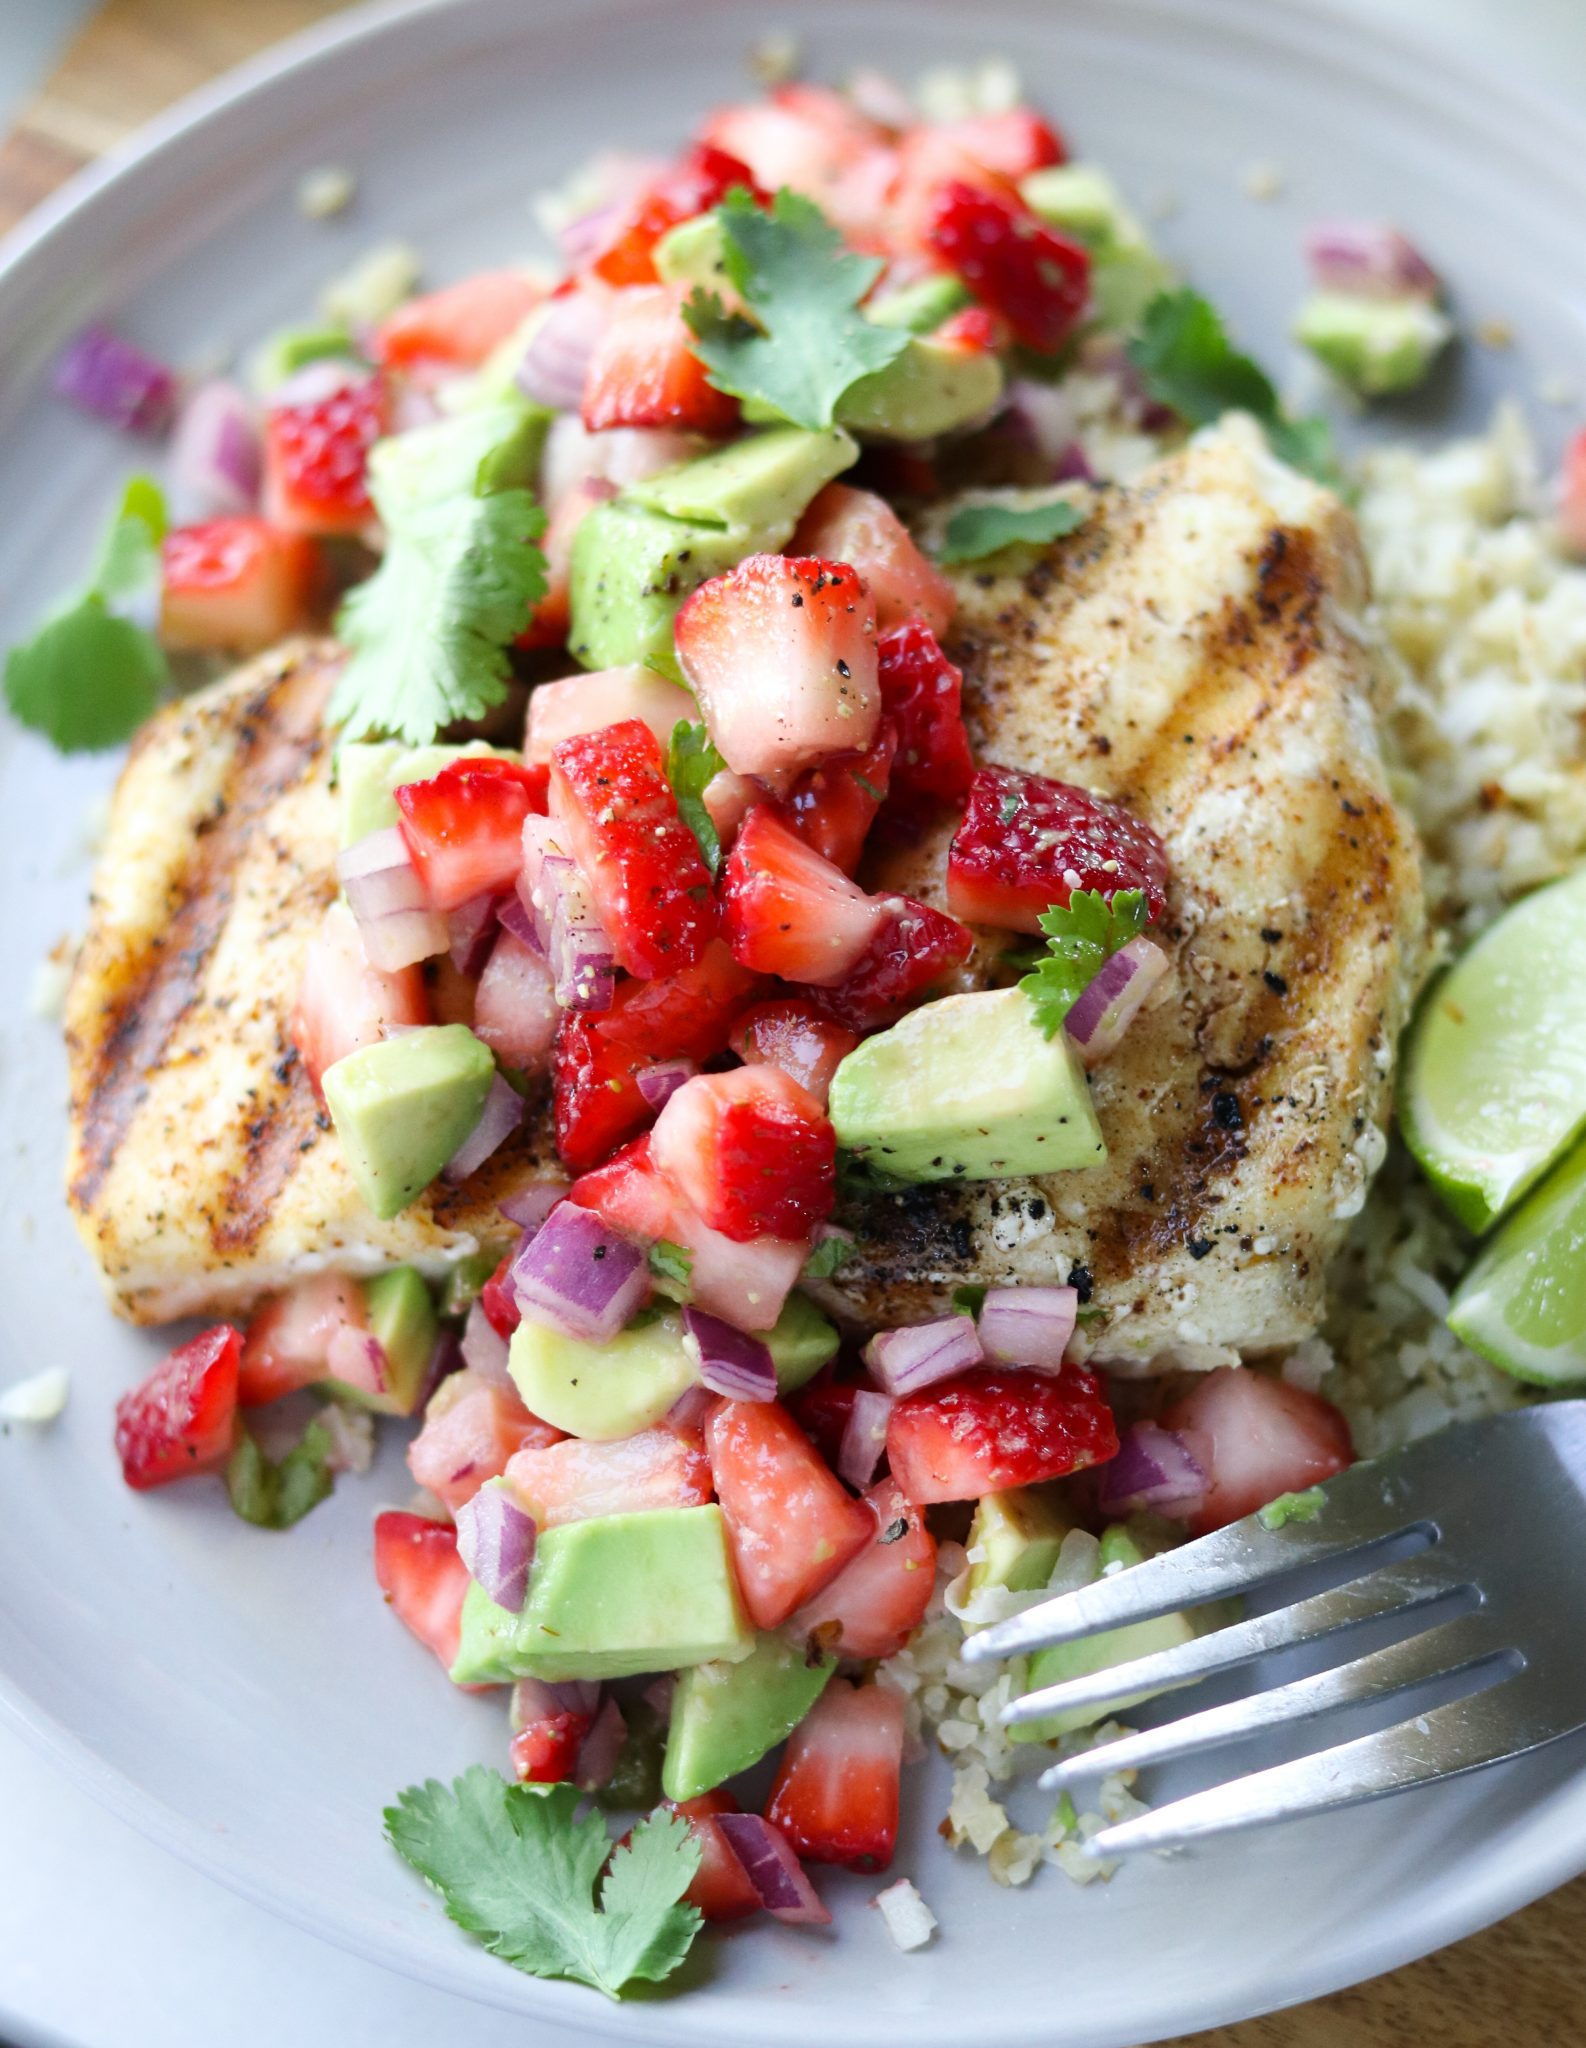 Grilled Halibut & Strawberry Guacamole - Finished Dish